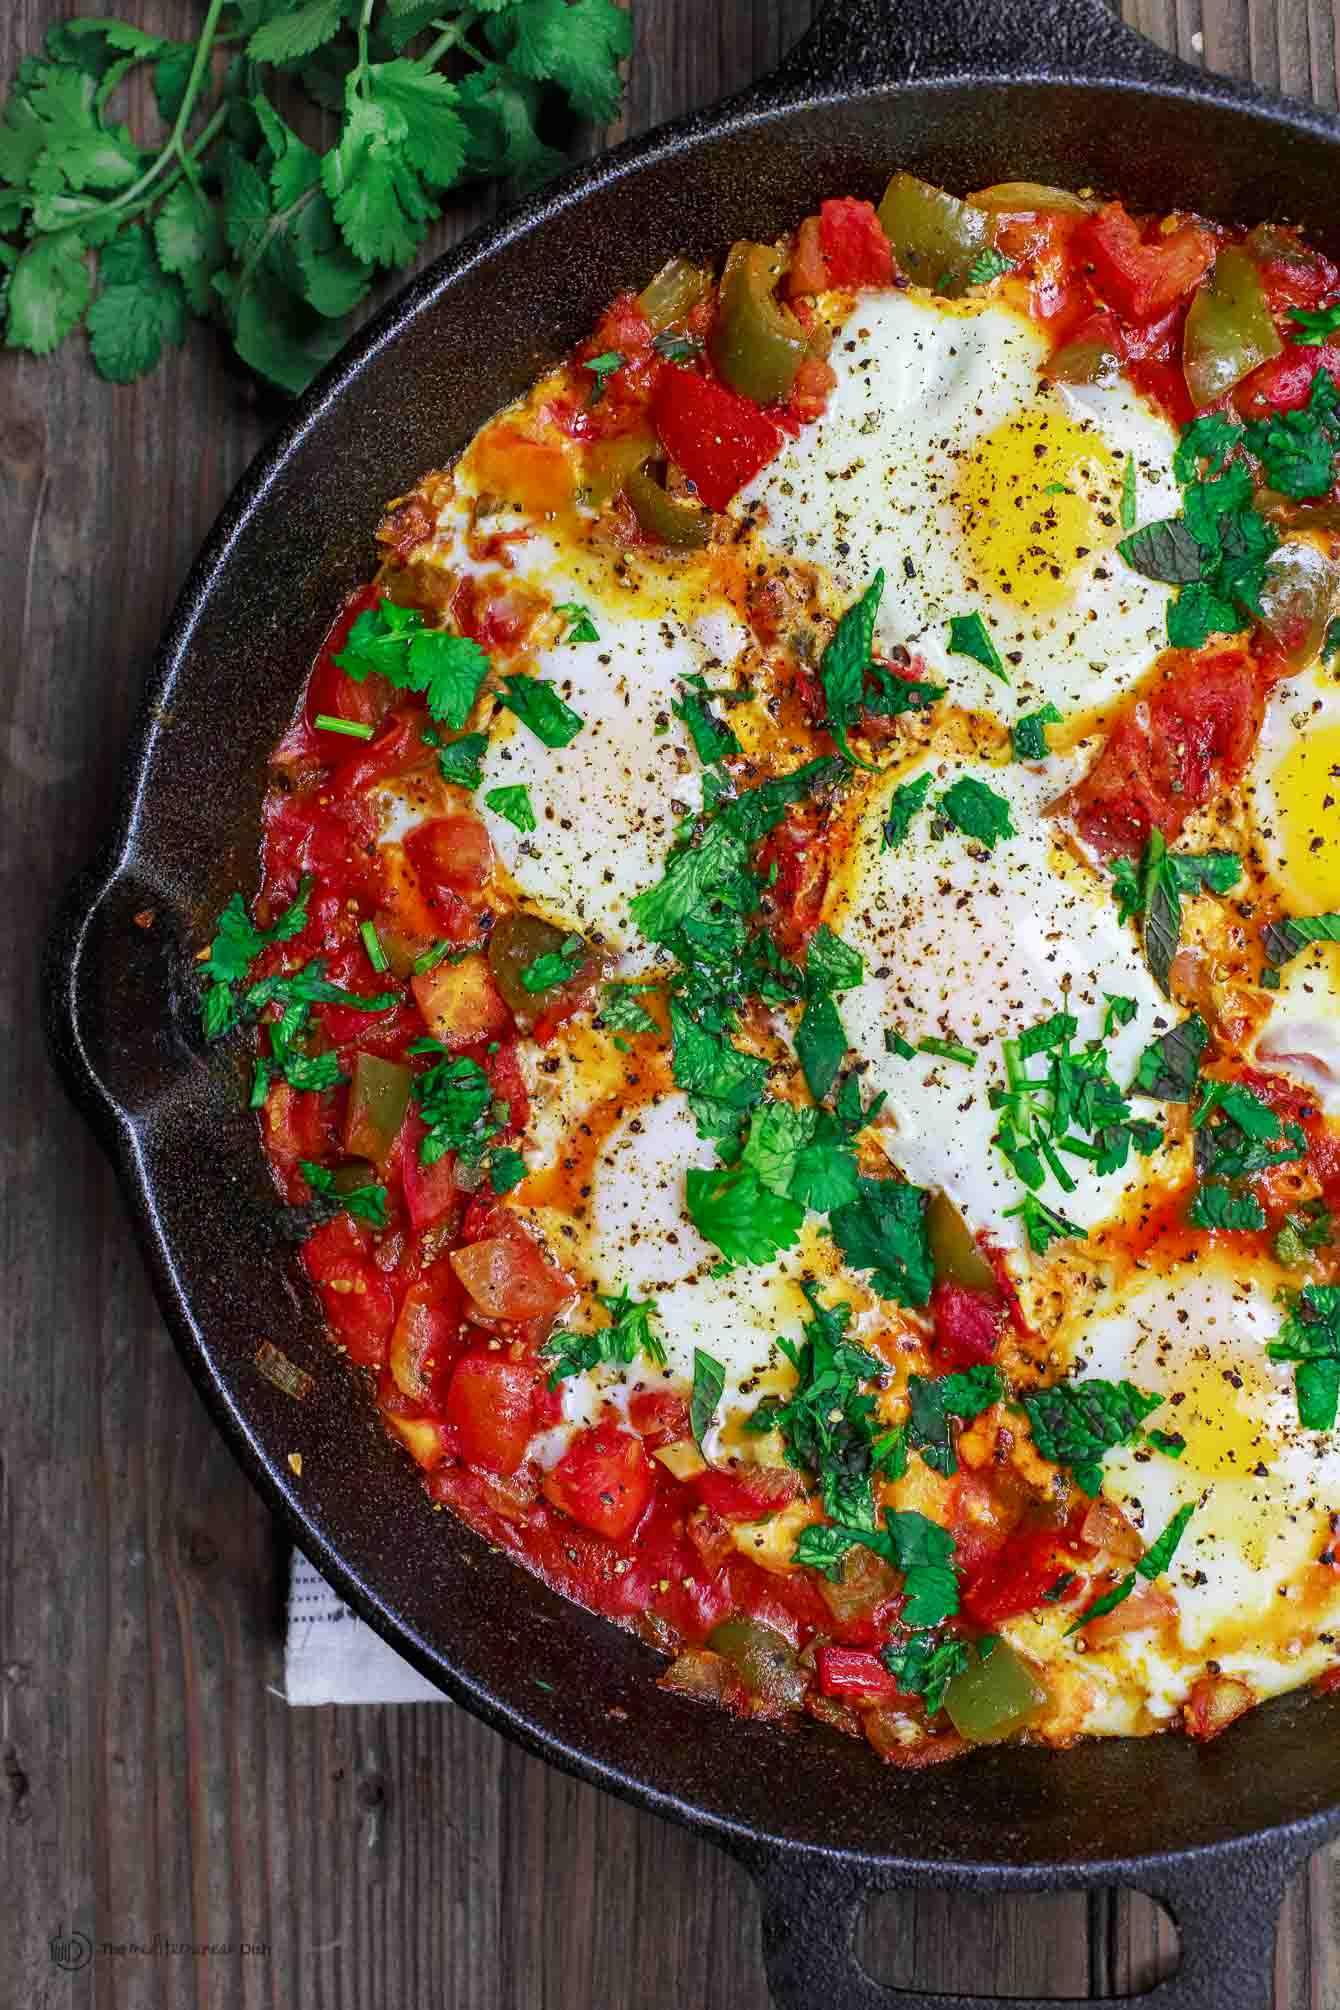 Simple Shakshuka in skillet. Poached eggs in a tomato and bell pepper stew.